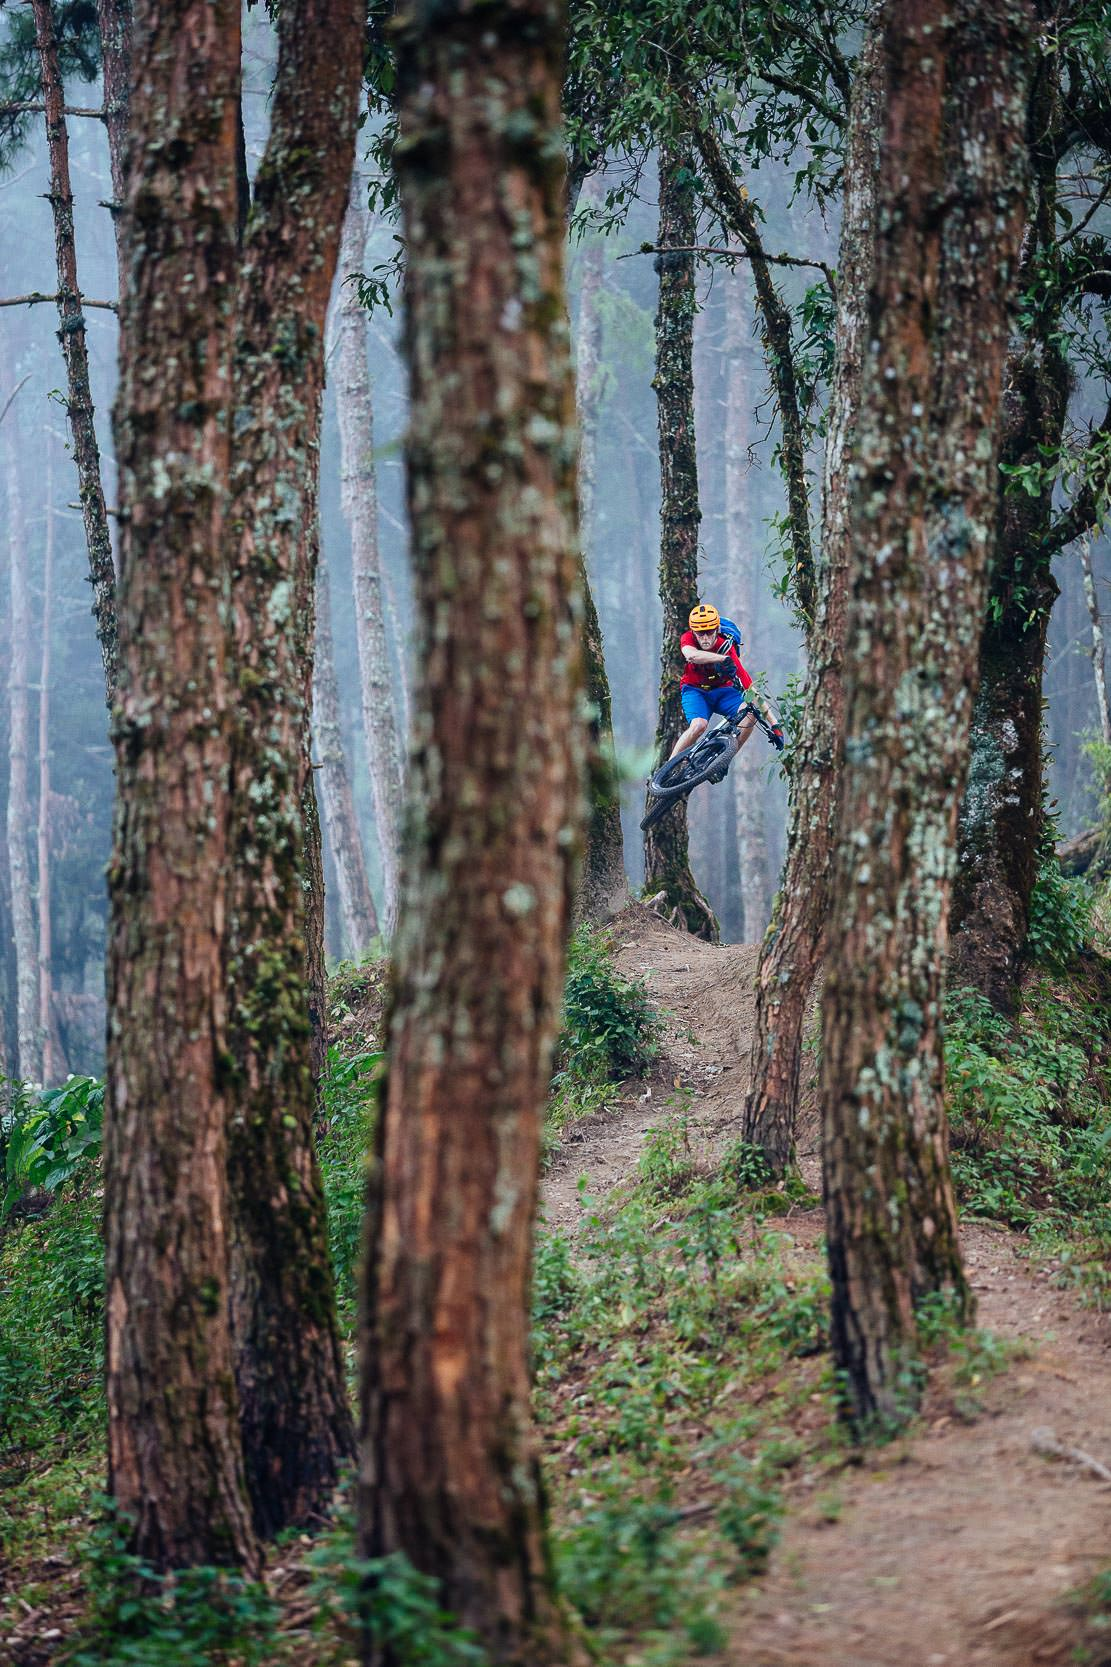 Andrew Whiteford rides the Doi Bakia Trail in the higher altitude jungle near Ban Sop Gai, Thailand